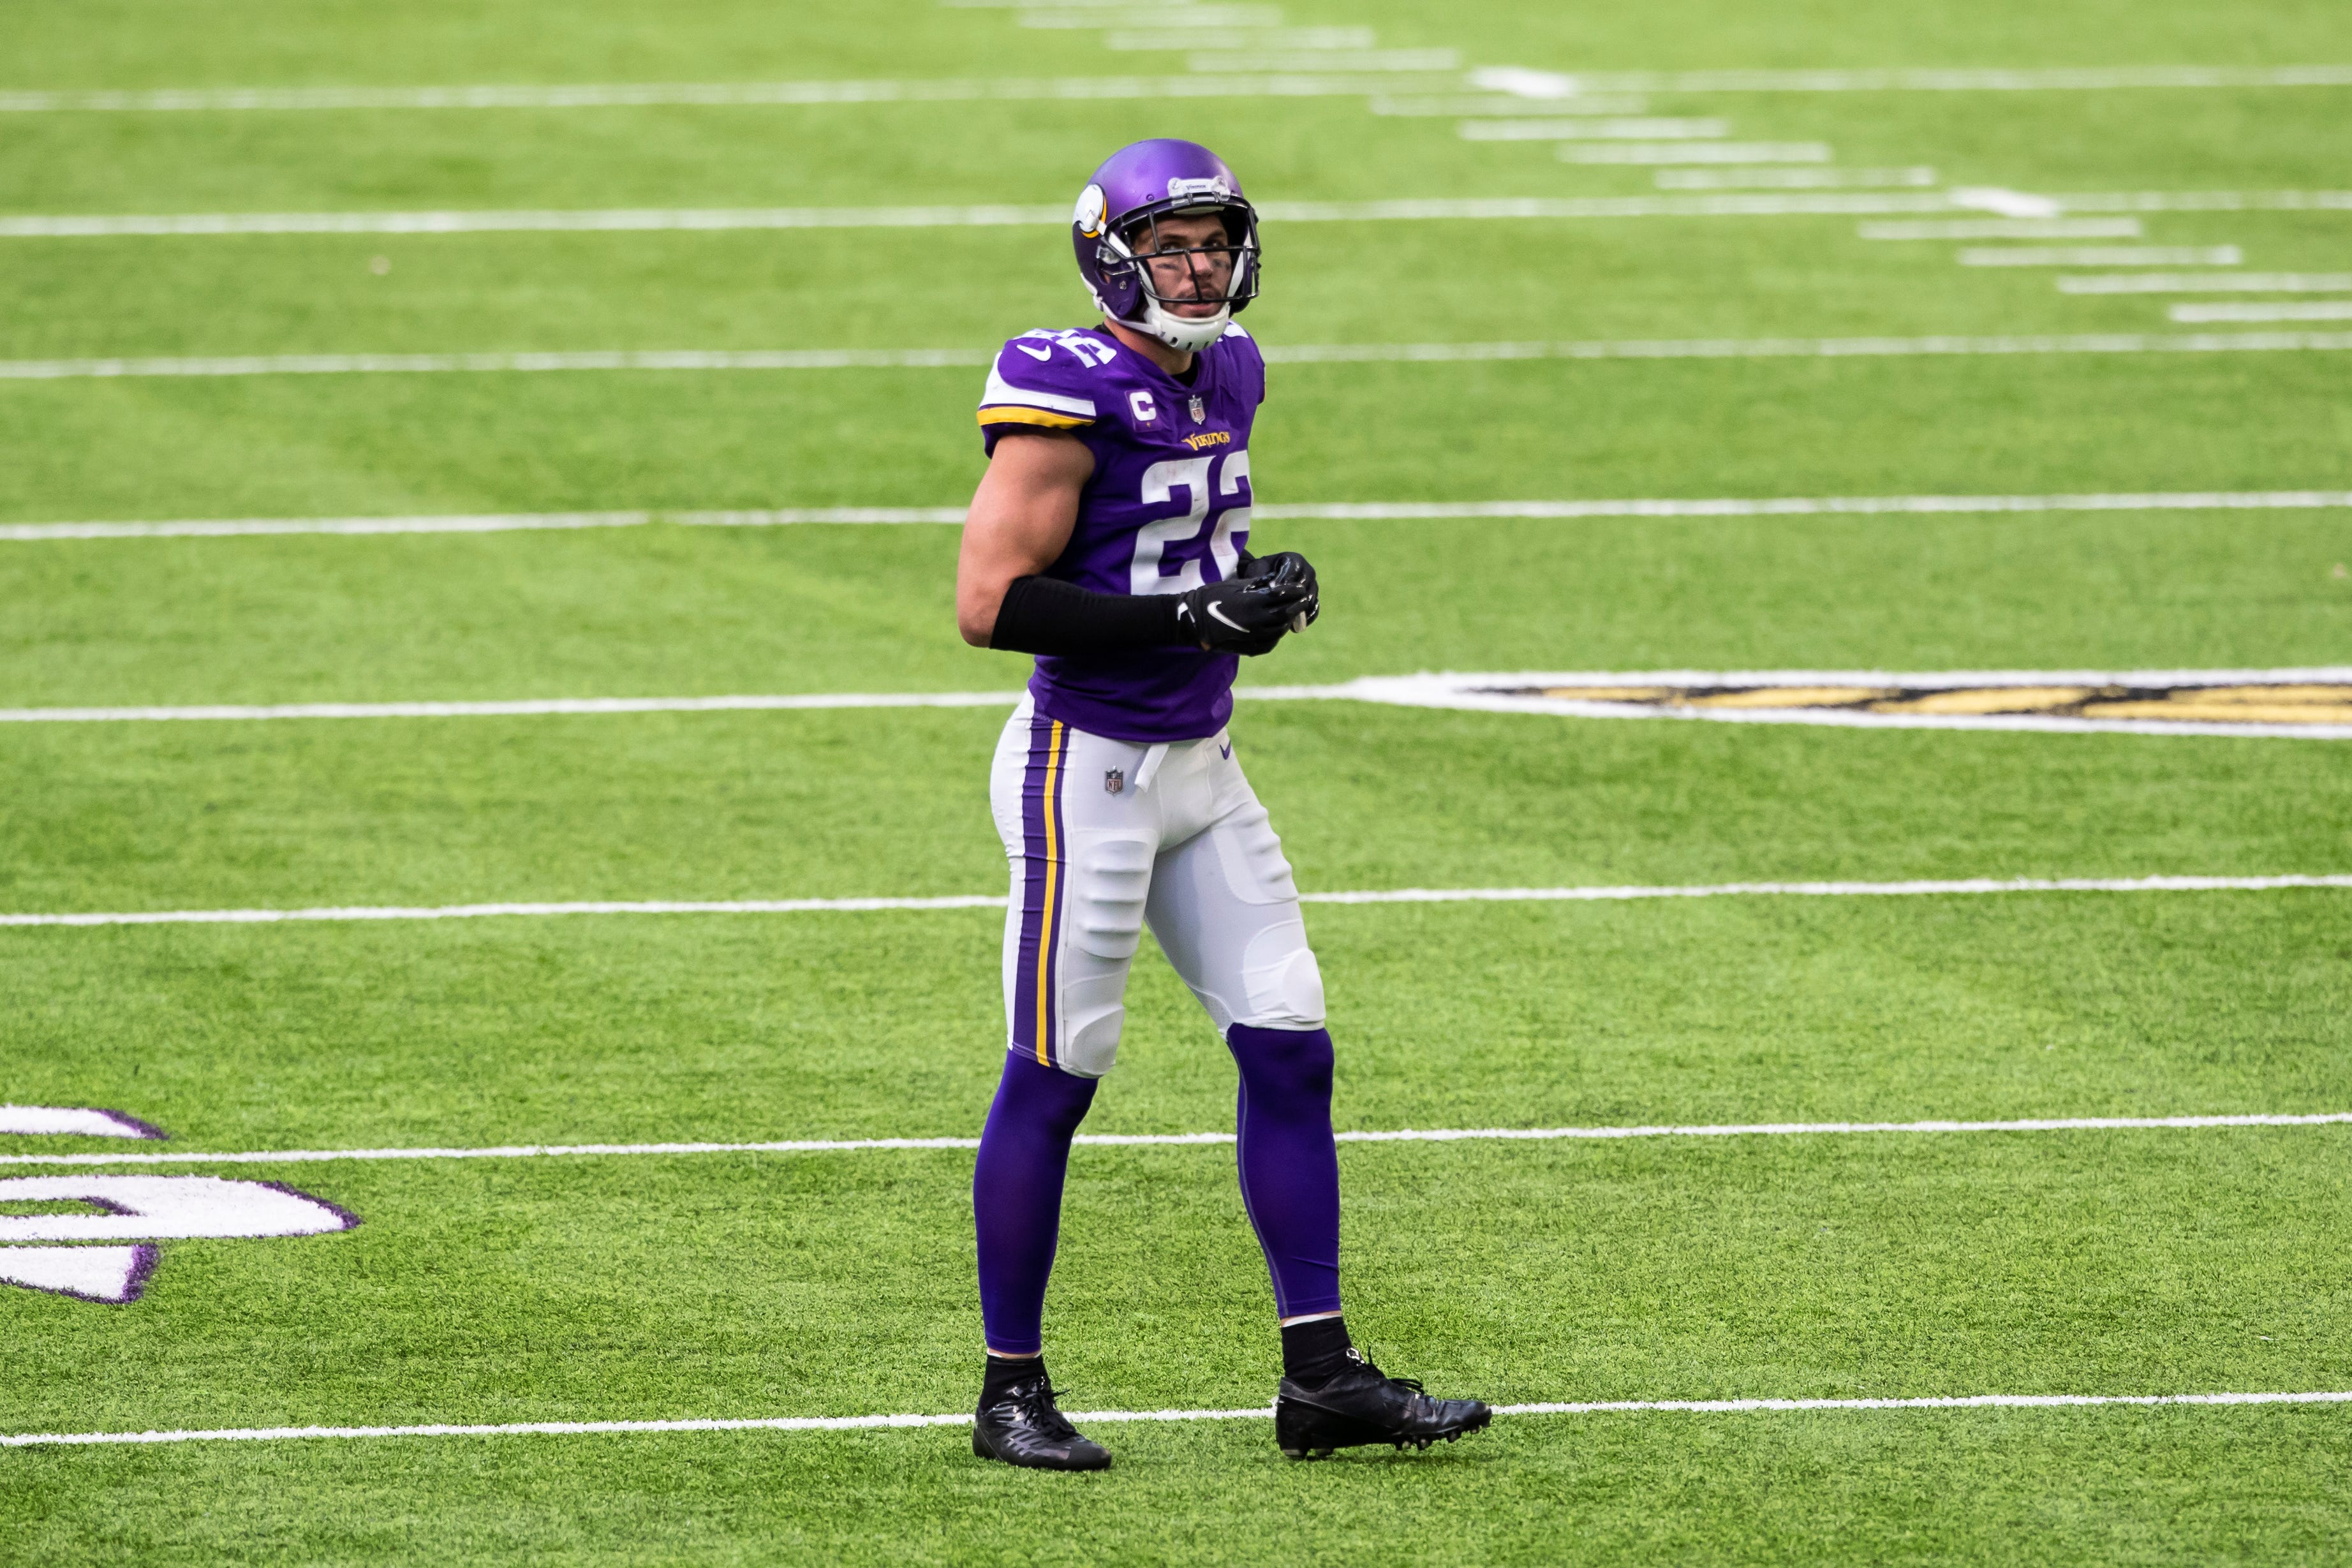 Vikings' Harrison Smith ejected for targeting call on Texans' Jordan Akins